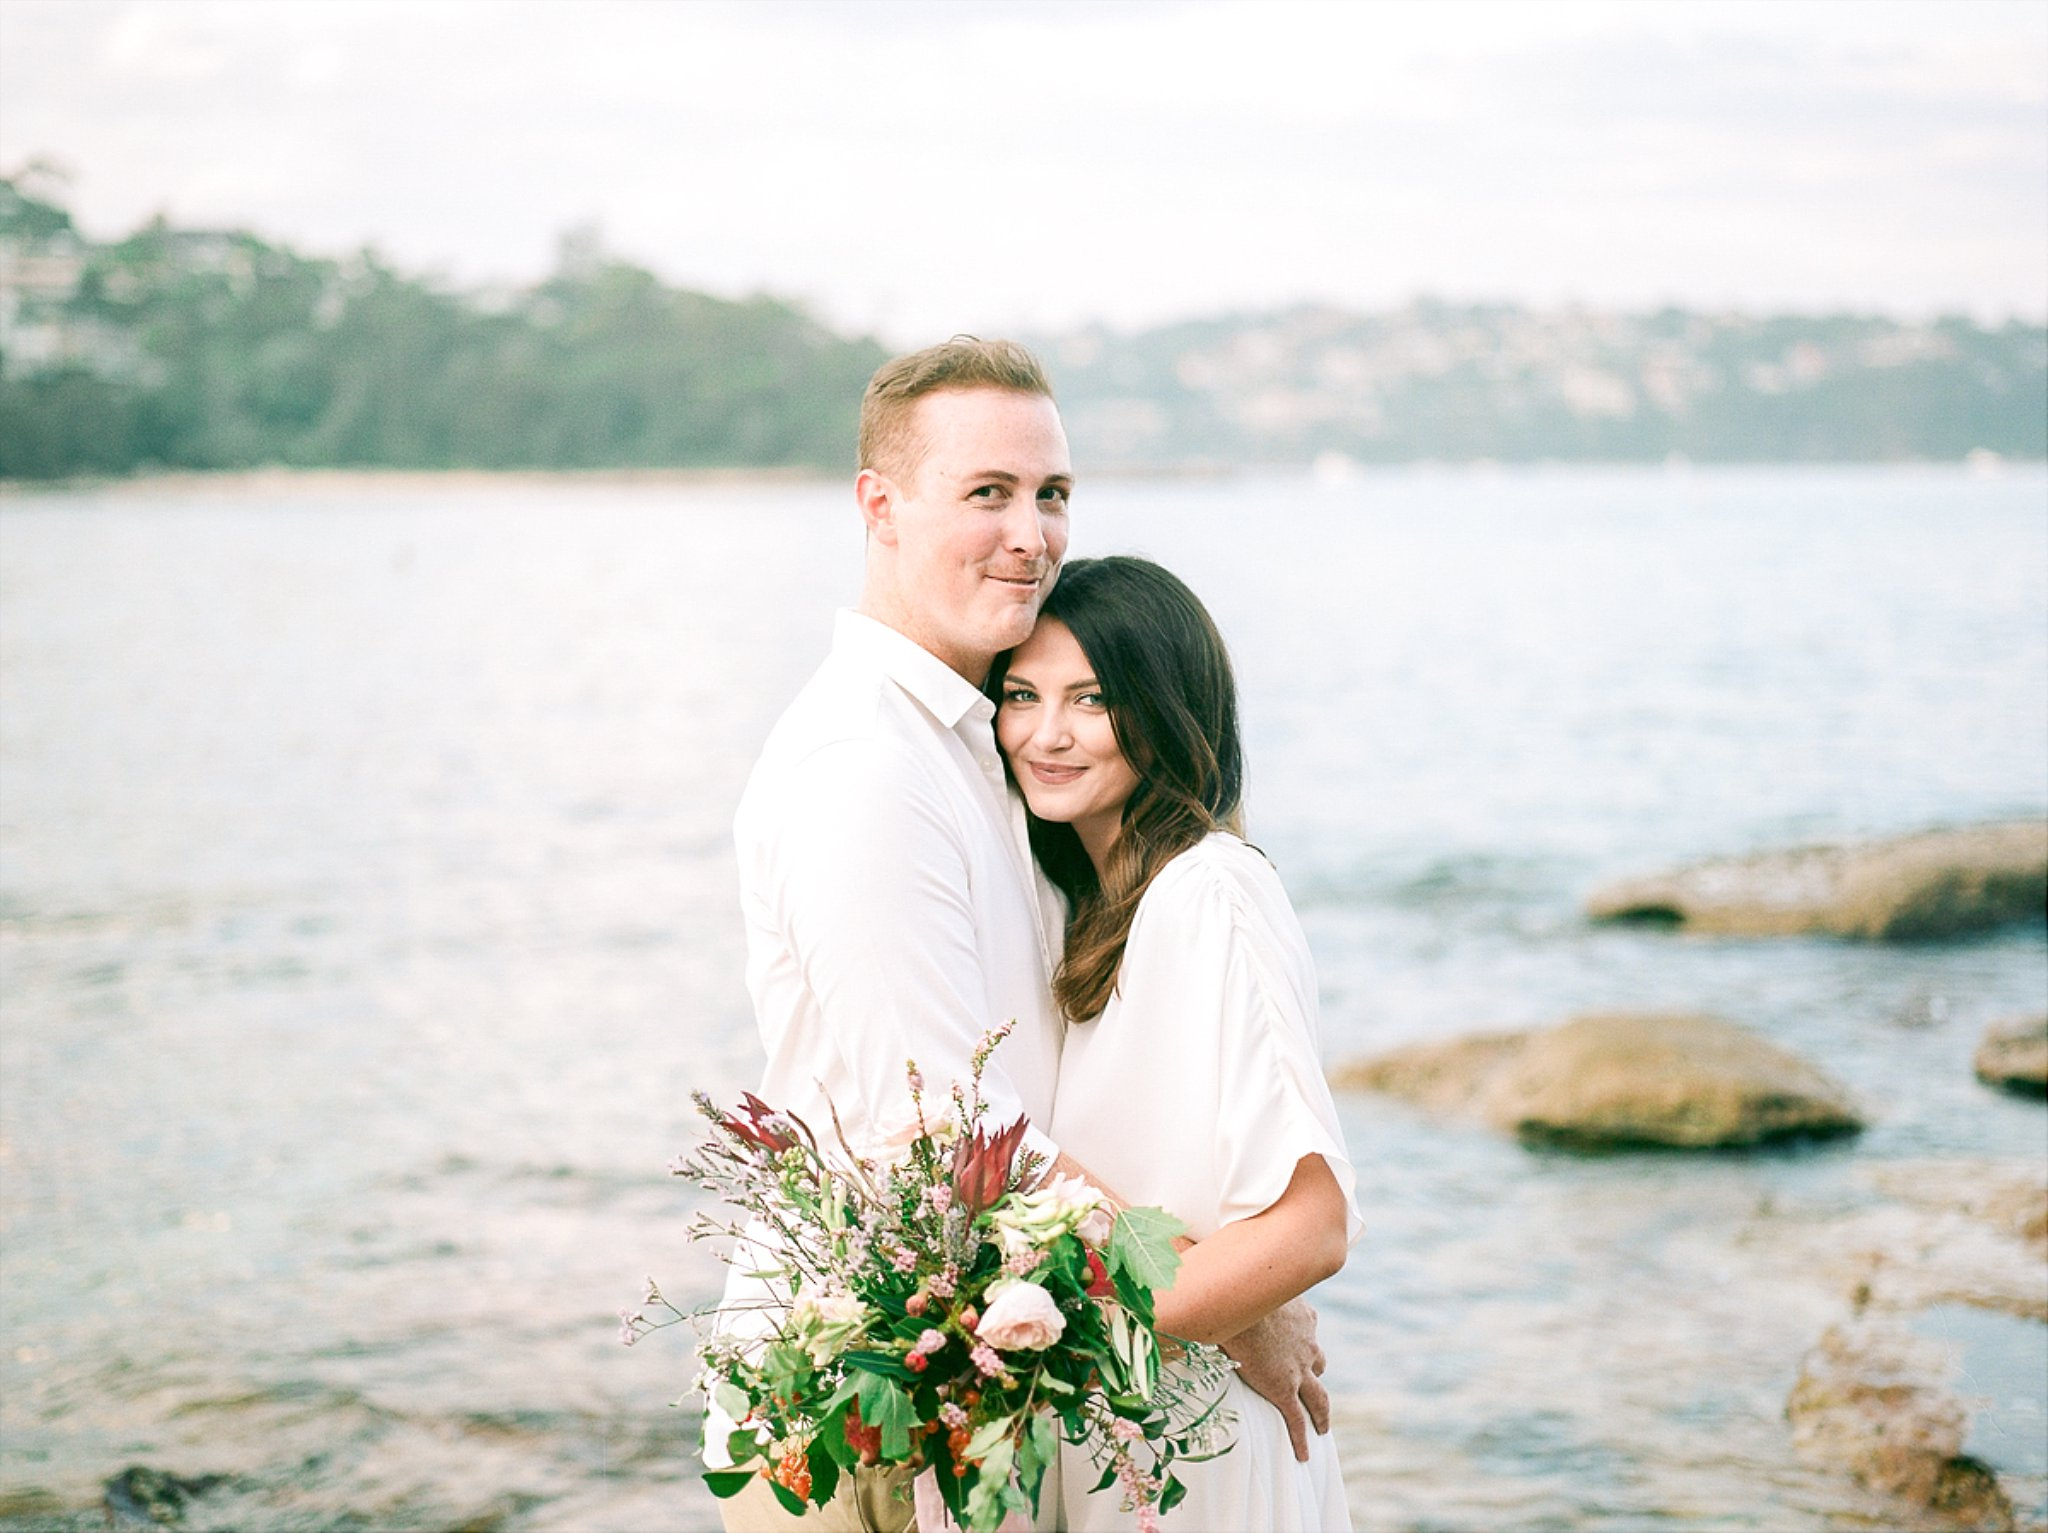 Balmoral Beach Engagement Shoot ~ Katie and Nick